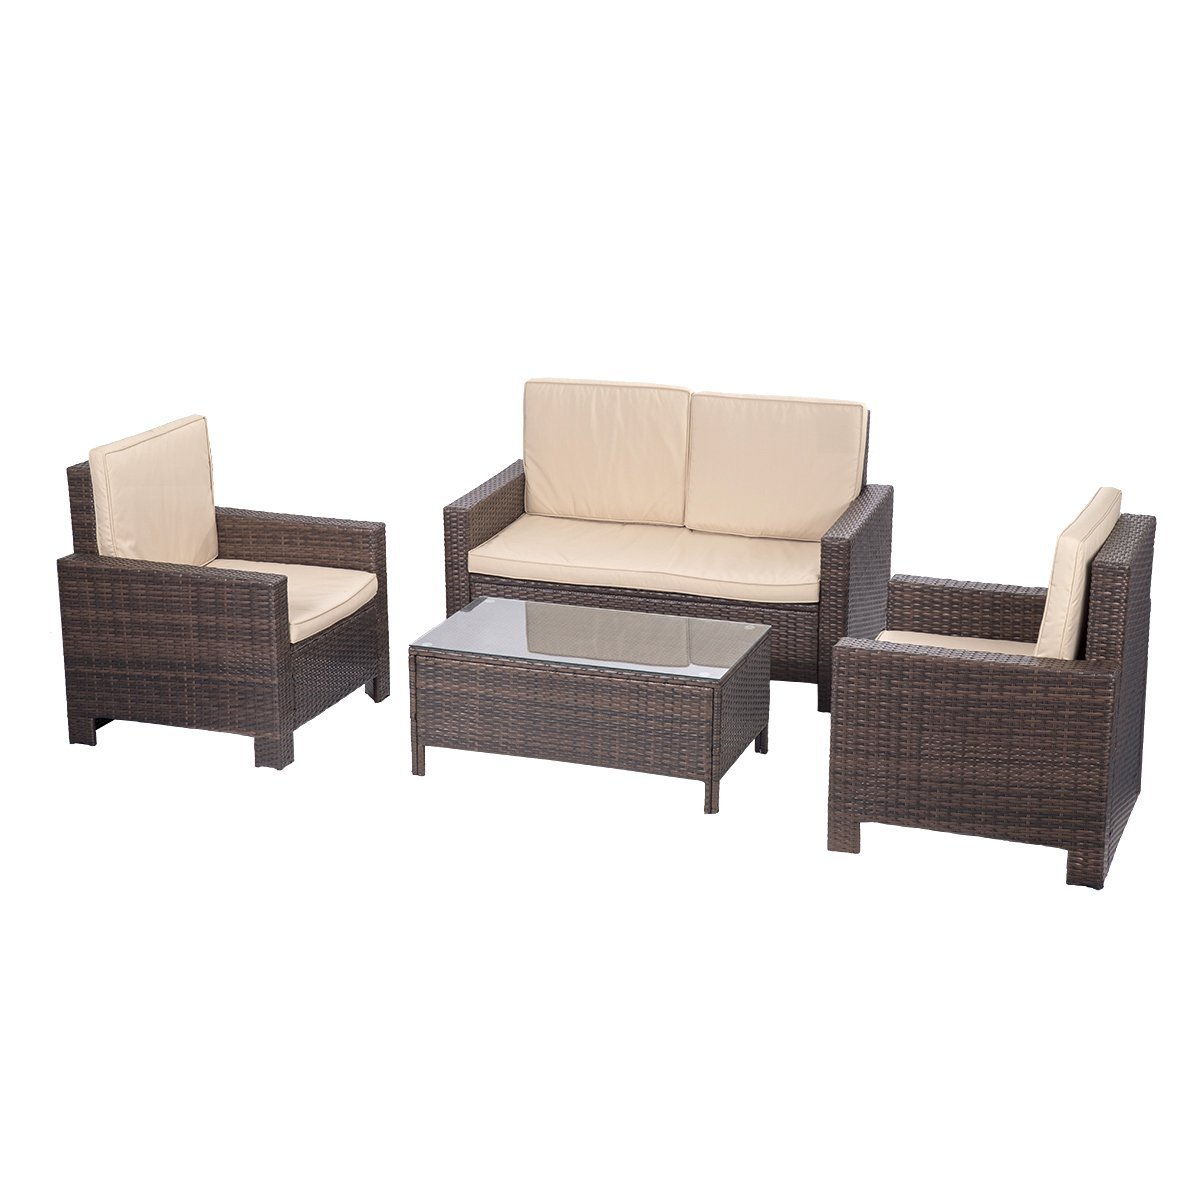 Patio Sofa Wicker Ranttan Outdoor Furniture Set Sectional Furniture 4 Pcs PE Wicker Rattan... by FDW